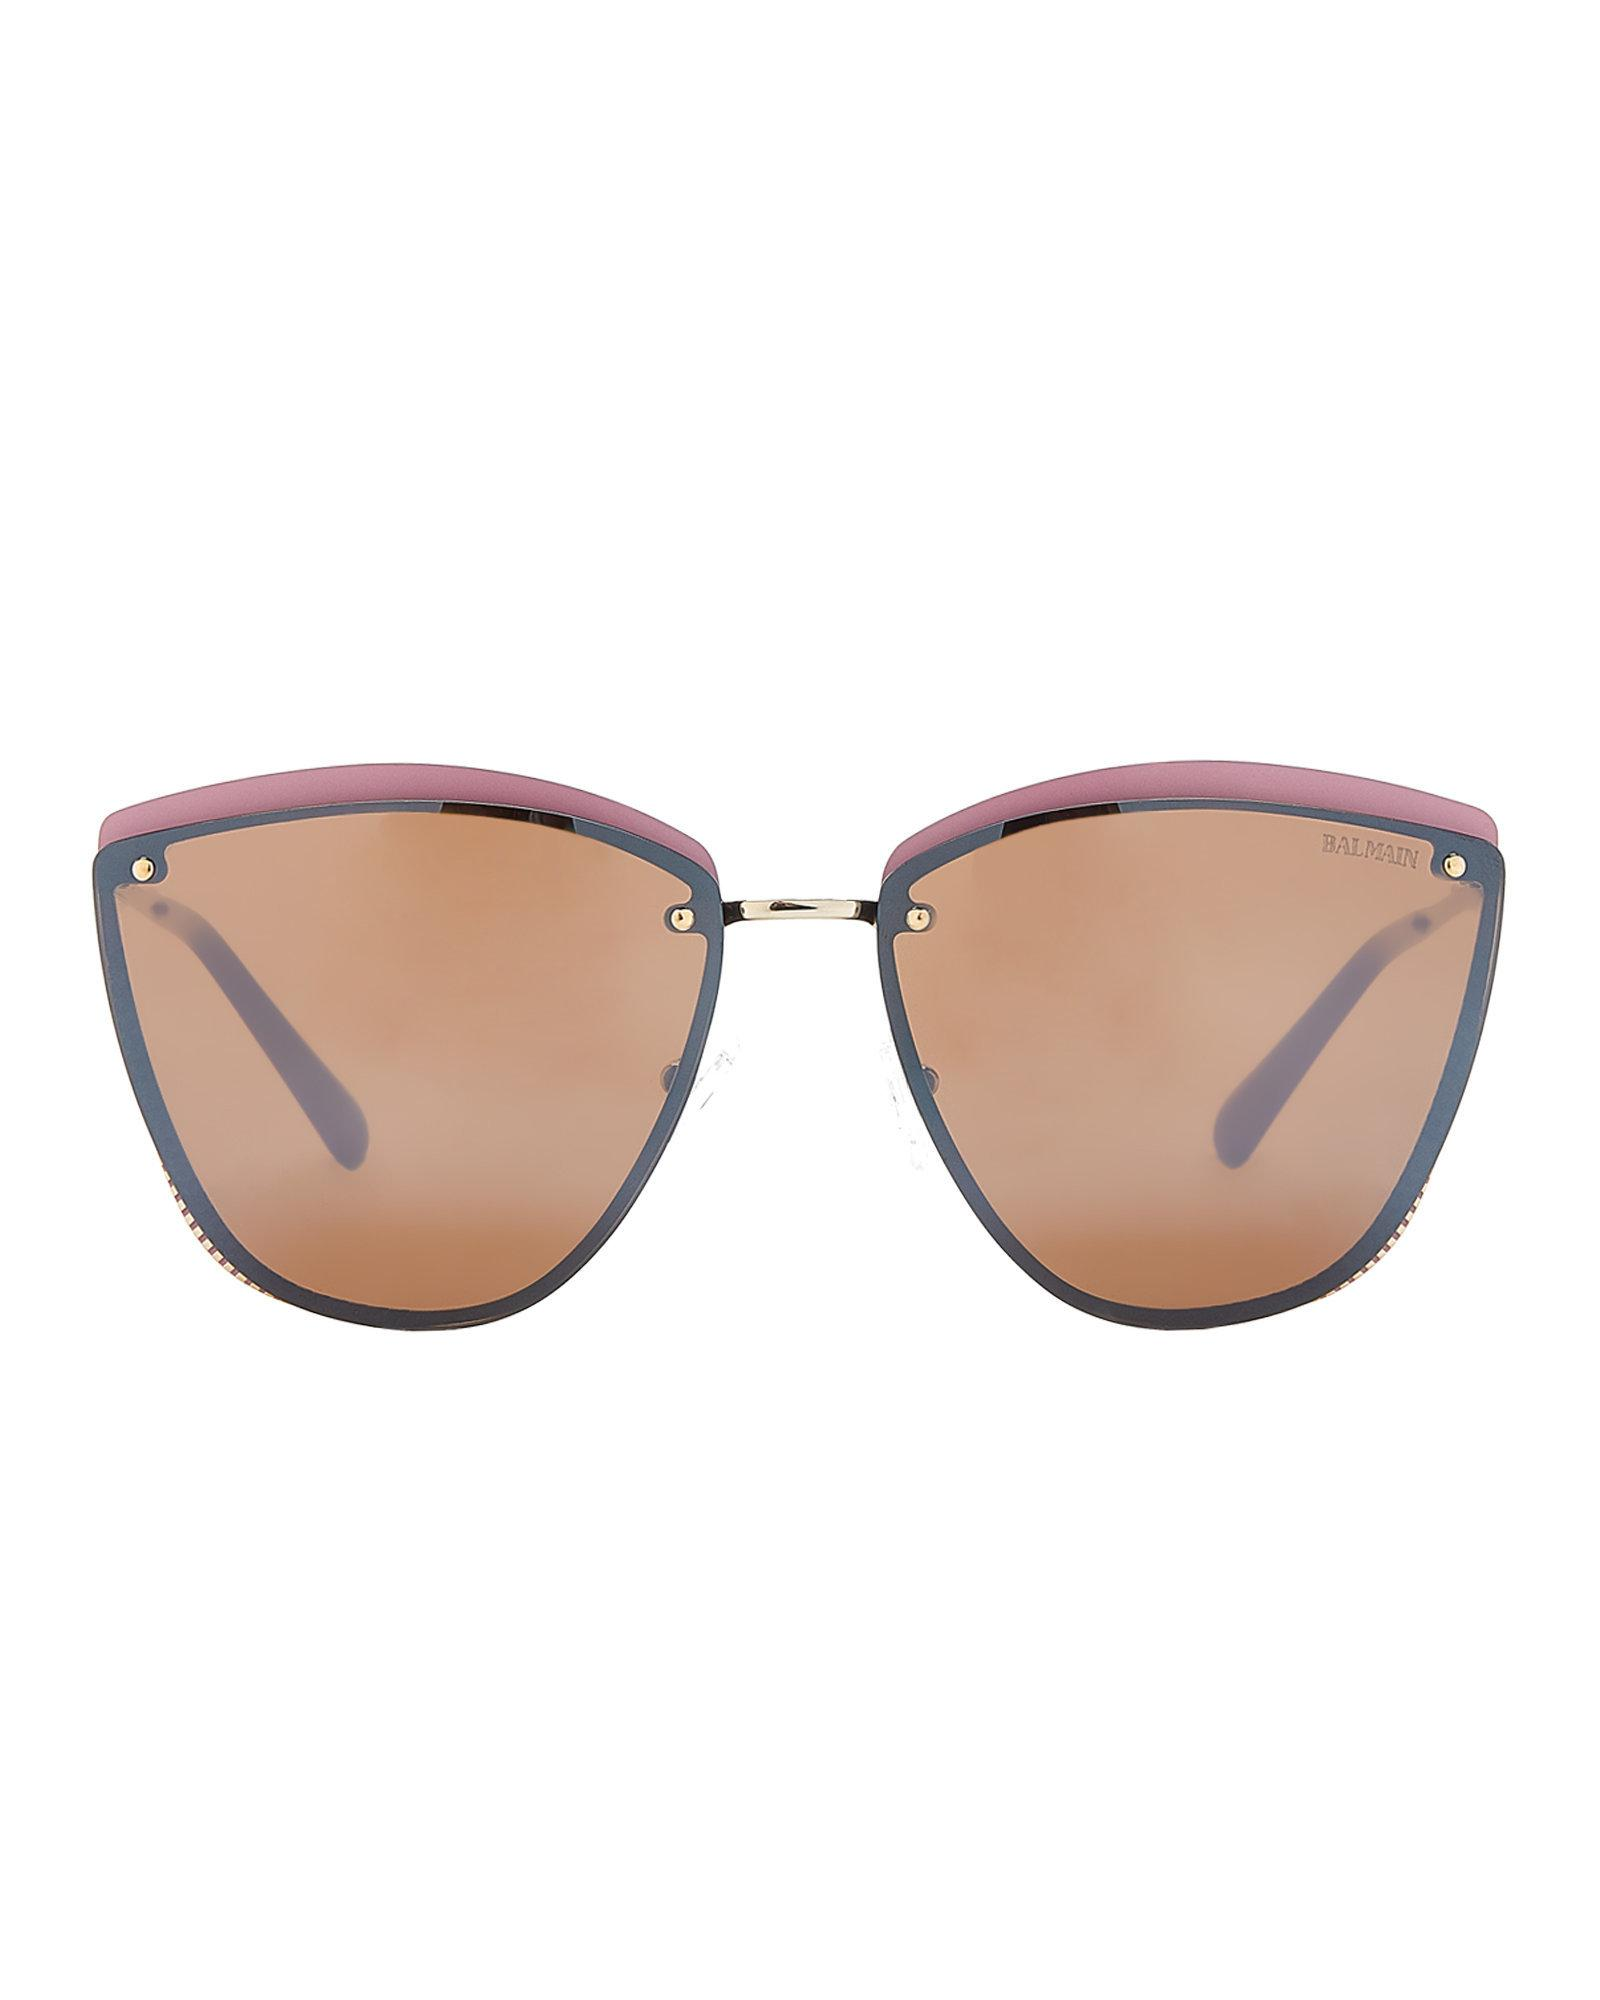 bb93f3a435 Lyst - Balmain Bl253003 Gold-tone   Pink Cat Eye Sunglasses